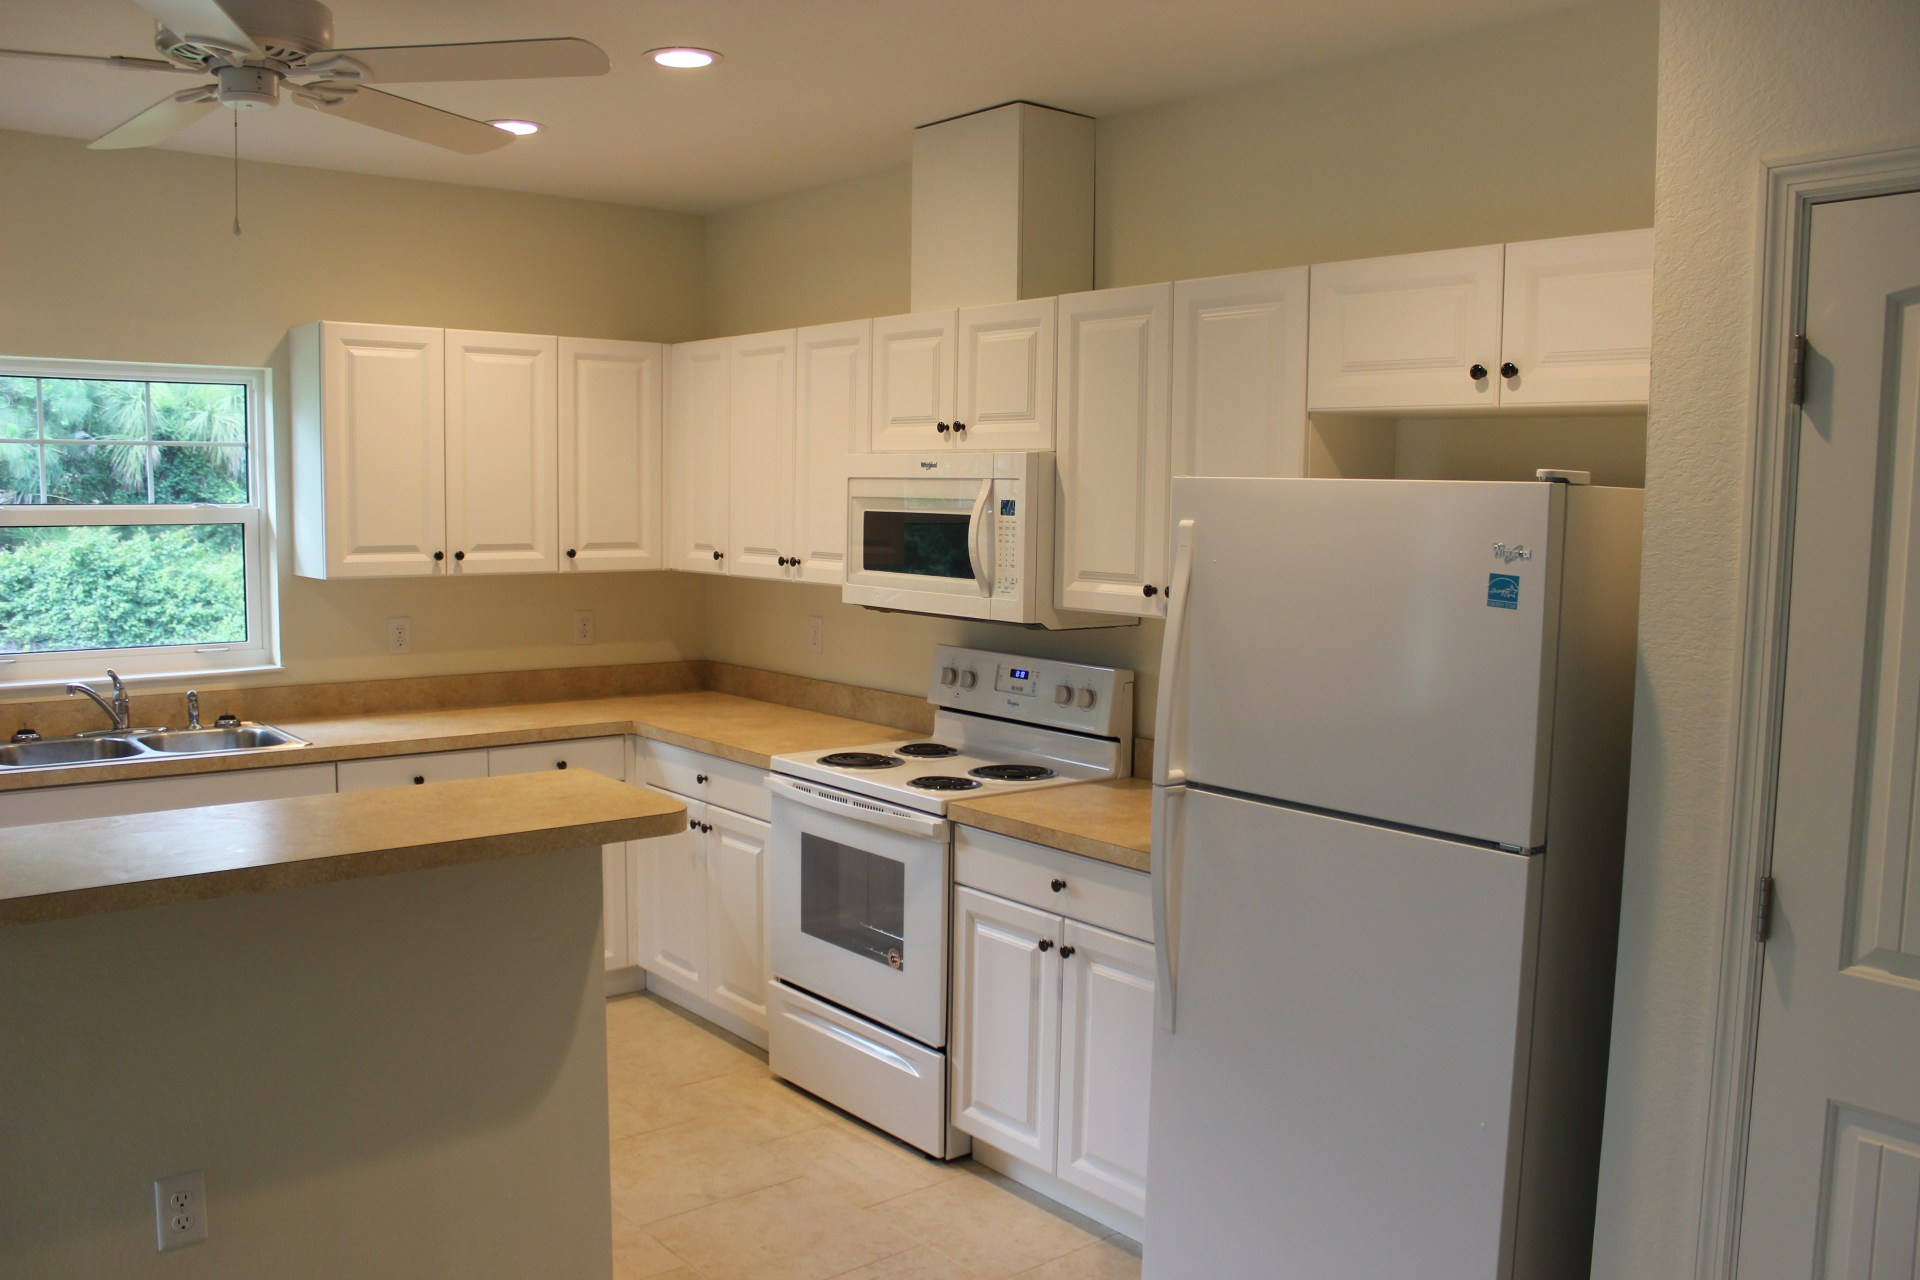 ENERGY STAR Refrigerator for Common Area Kitchen